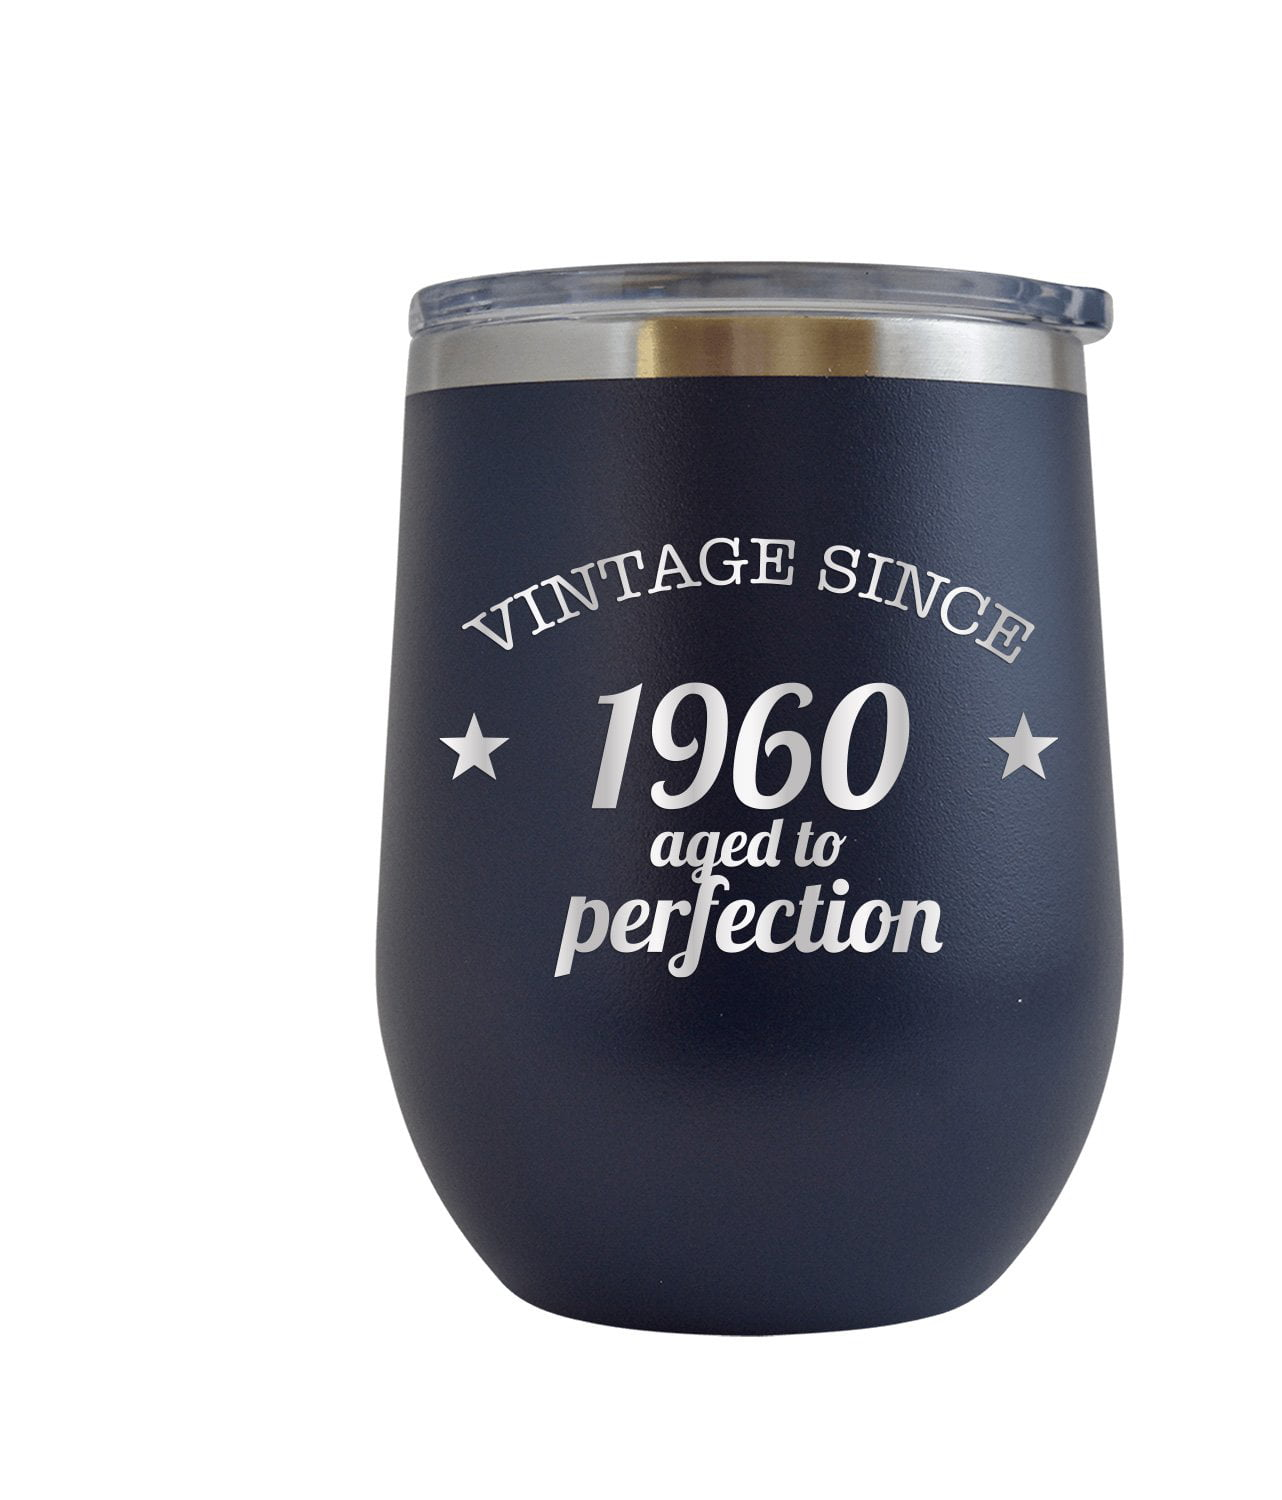 60th Birthday Gift for Men or Women 12 oz Stainless Steel Engraved Tumbler 60 year old humorous funny birthday gift 1960 60th birthday decorations for women mom dad men